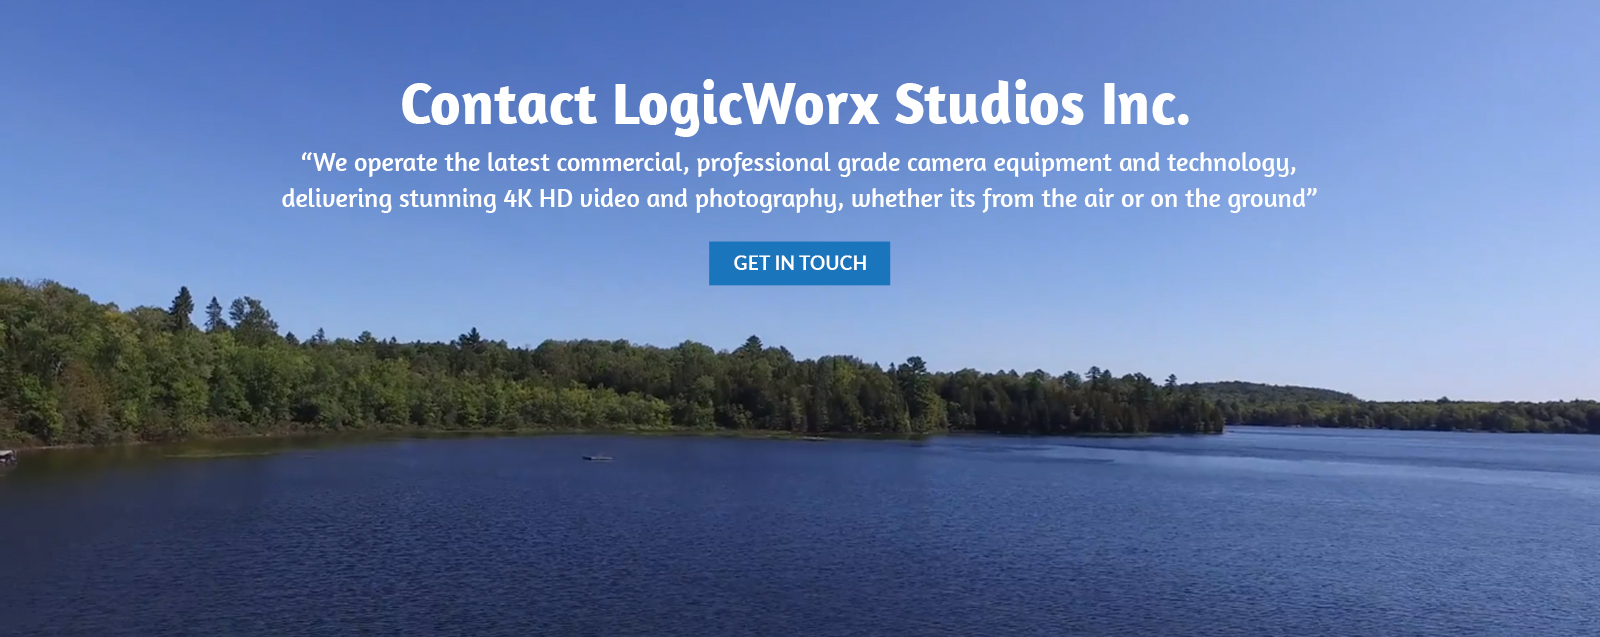 Contact LogicWorx Studios Inc. - Commercial Video Production Services Markham